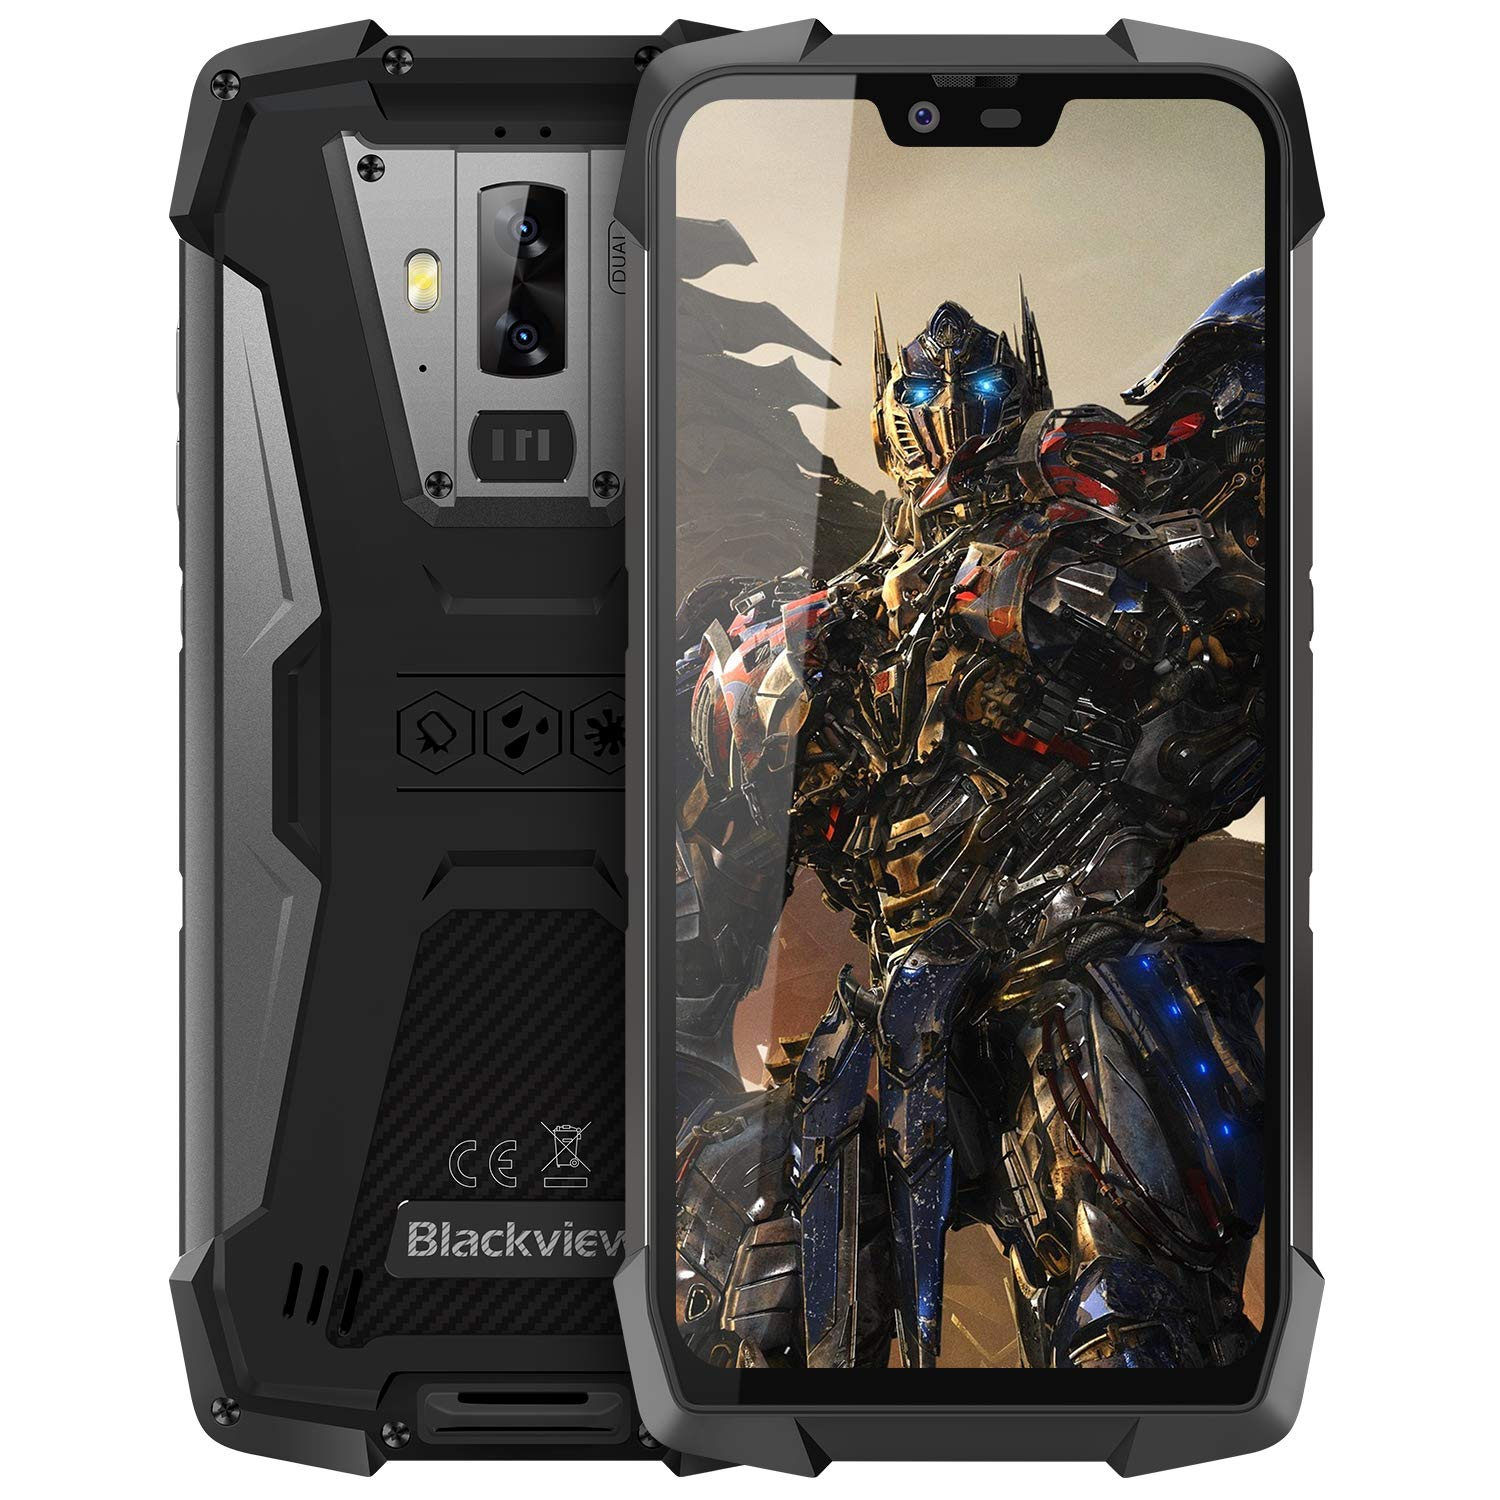 Rugged Cell Phones Unlocked, Blackview BV9700 Pro 4G Rugged IP68 Waterproof Drop Proof Smartphones, Octa Core 6GB+128GB 5.8 inches FHD Screen Android 9.0 4380mAh Battery Dual Sim Mobile Phone, Black by Blackview